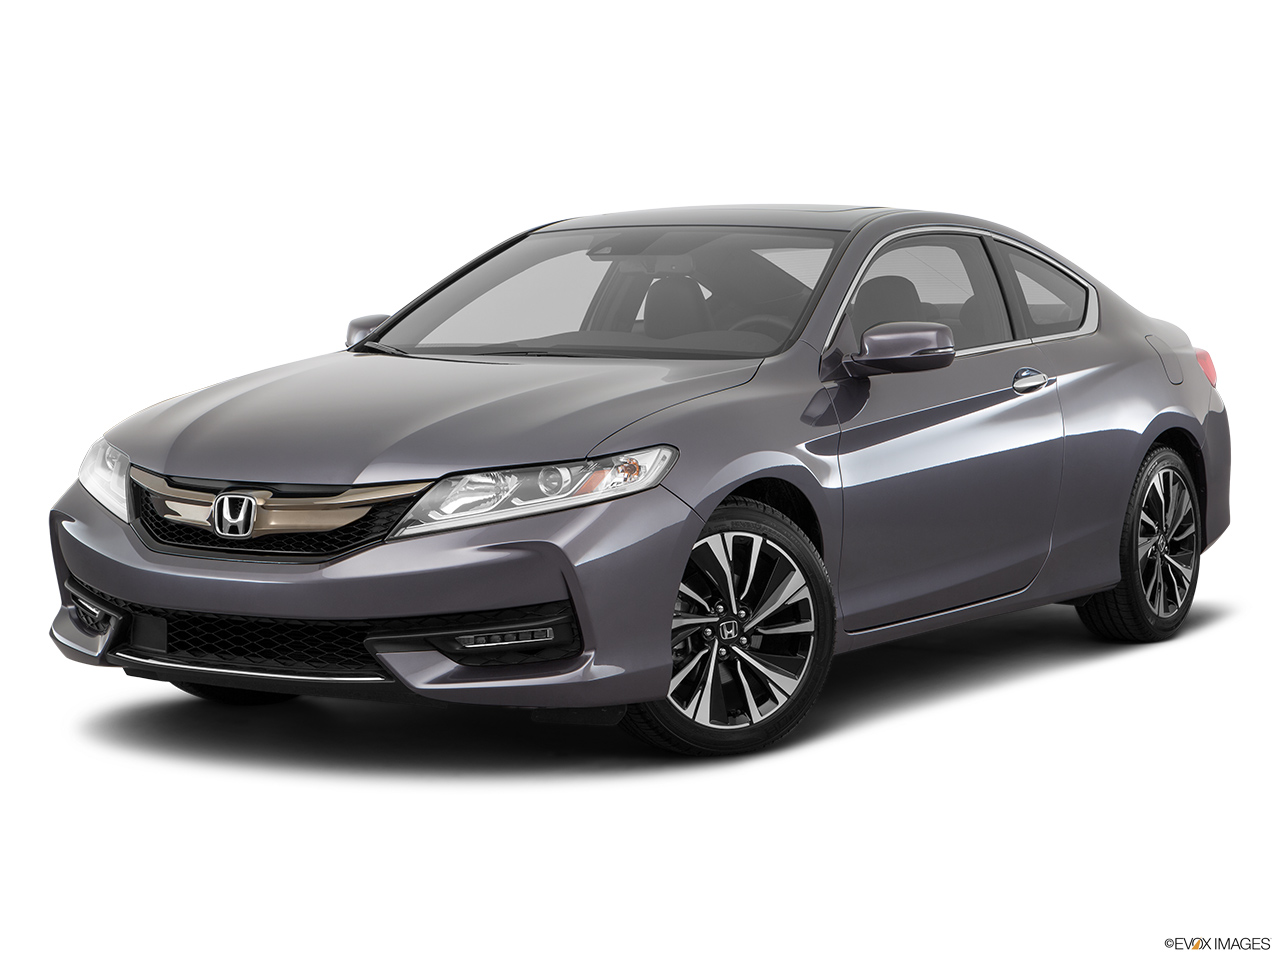 Car pictures list for honda accord coupe 2016 3 5l ex for Honda accord ex coupe